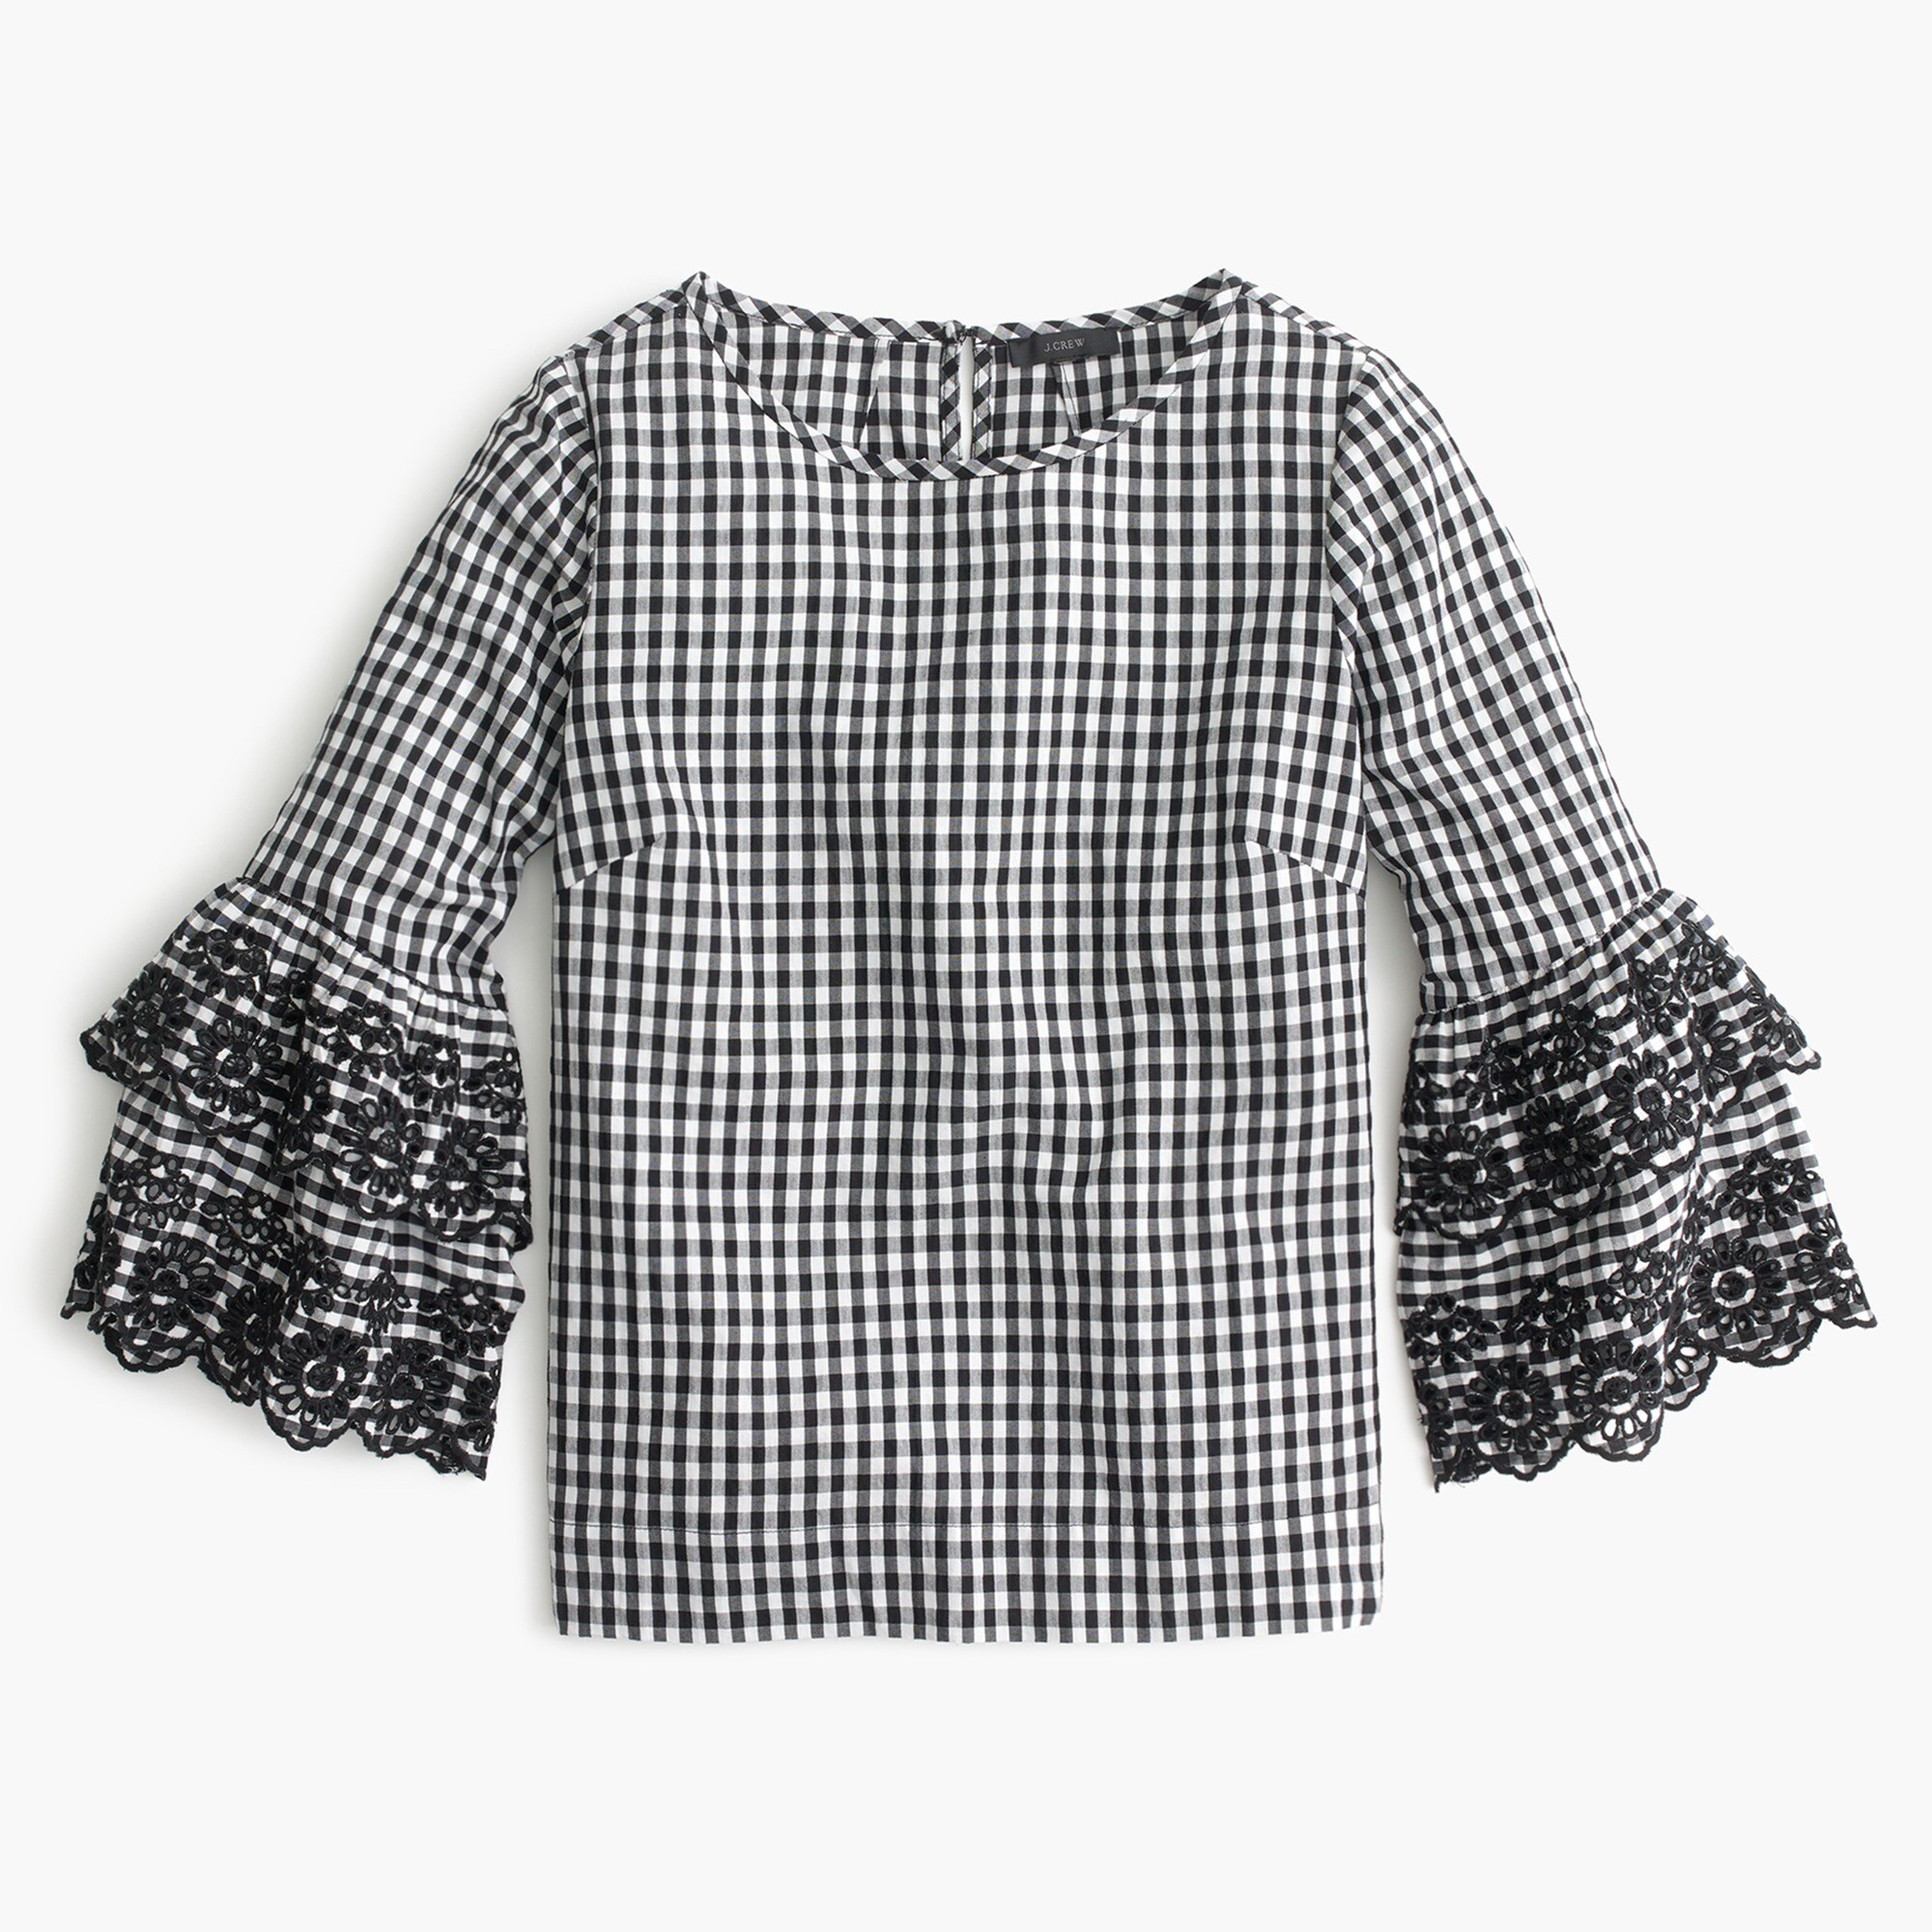 women's tiered bell-sleeve top in gingham - women's shirts